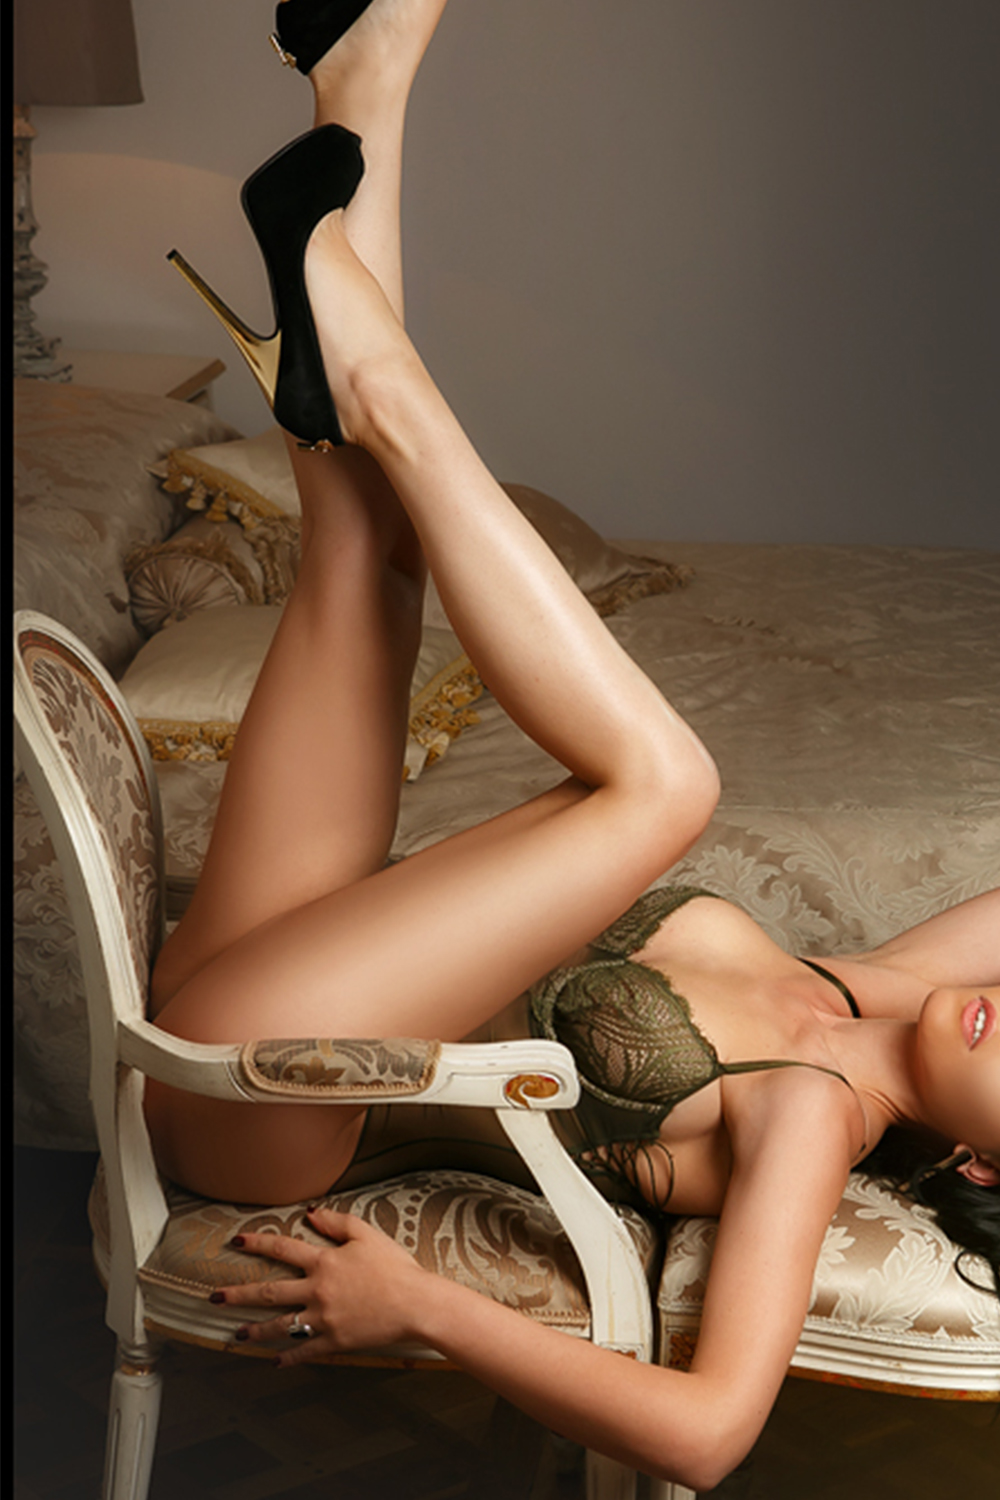 escorte sandnes erotic escort